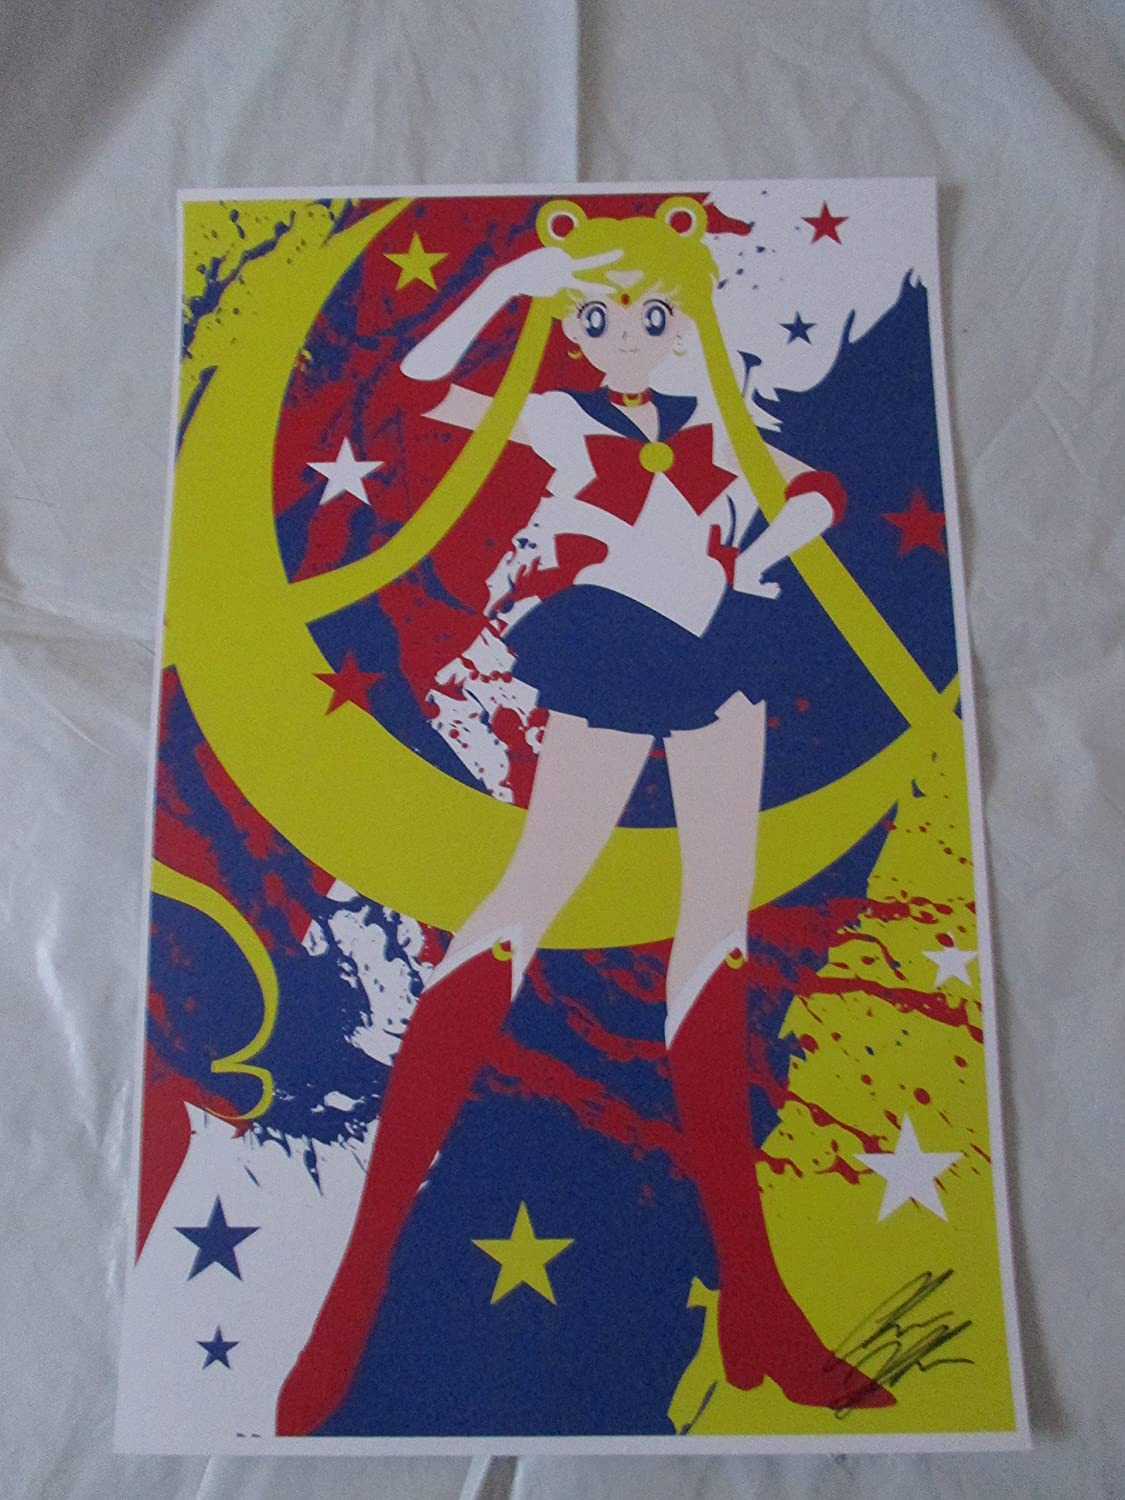 SAILOR MOON! 11' By 17' Limited Edition Print Signed By Chris Huffman, W/coa SAILOR MOON! 11 By 17 Limited Edition Print Signed By Chris Huffman